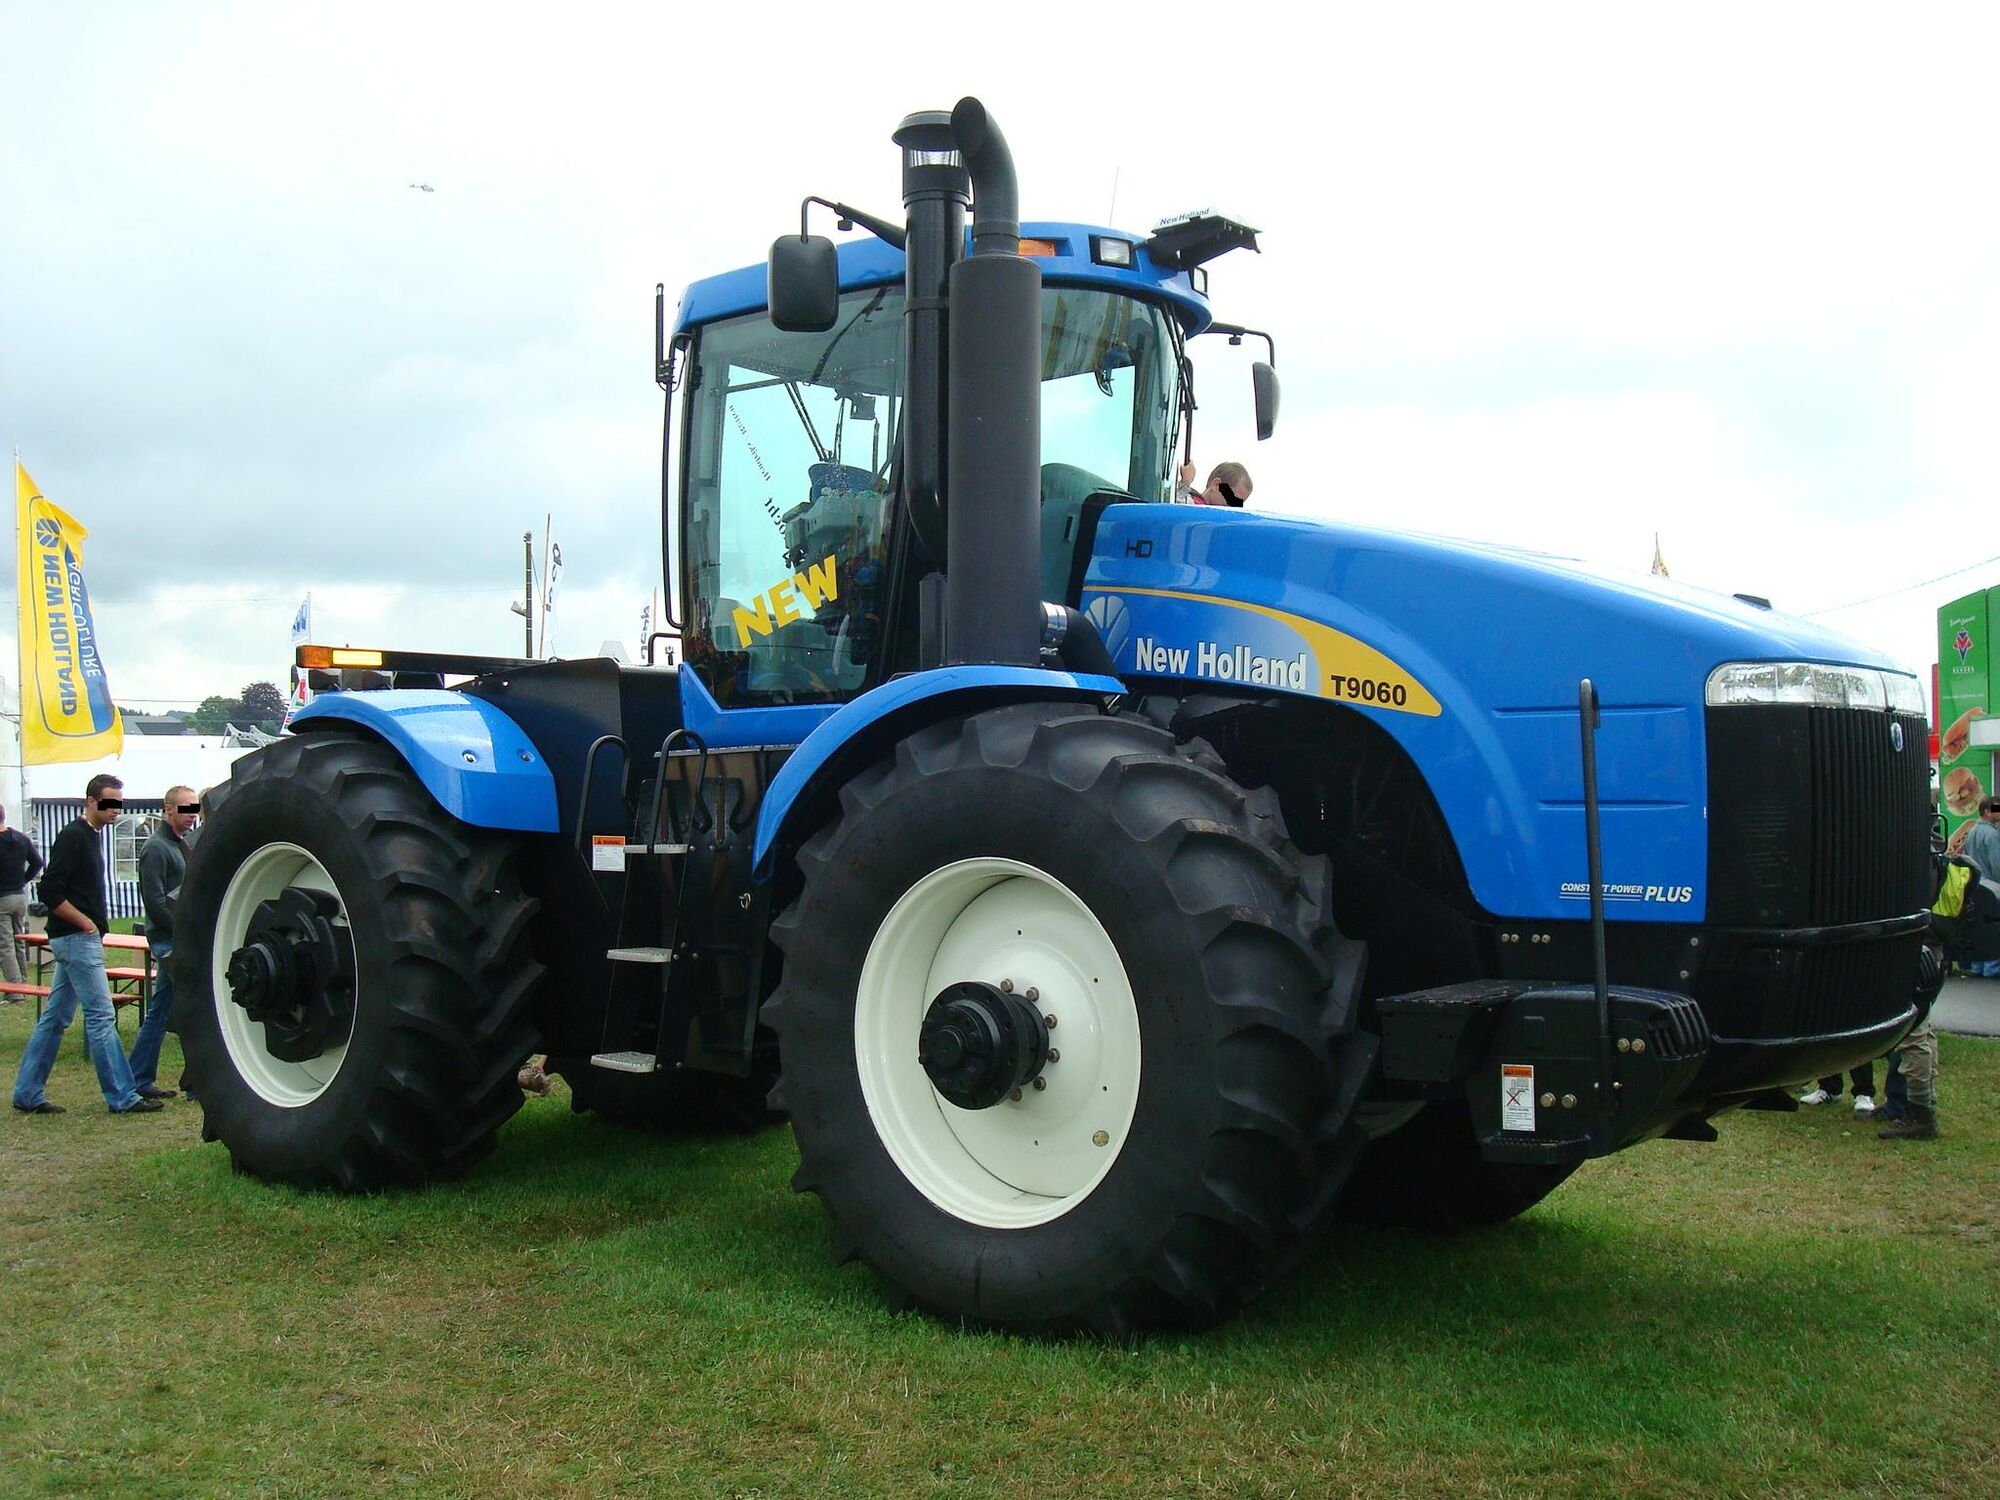 new holland t9060 tractor construction plant wiki. Black Bedroom Furniture Sets. Home Design Ideas